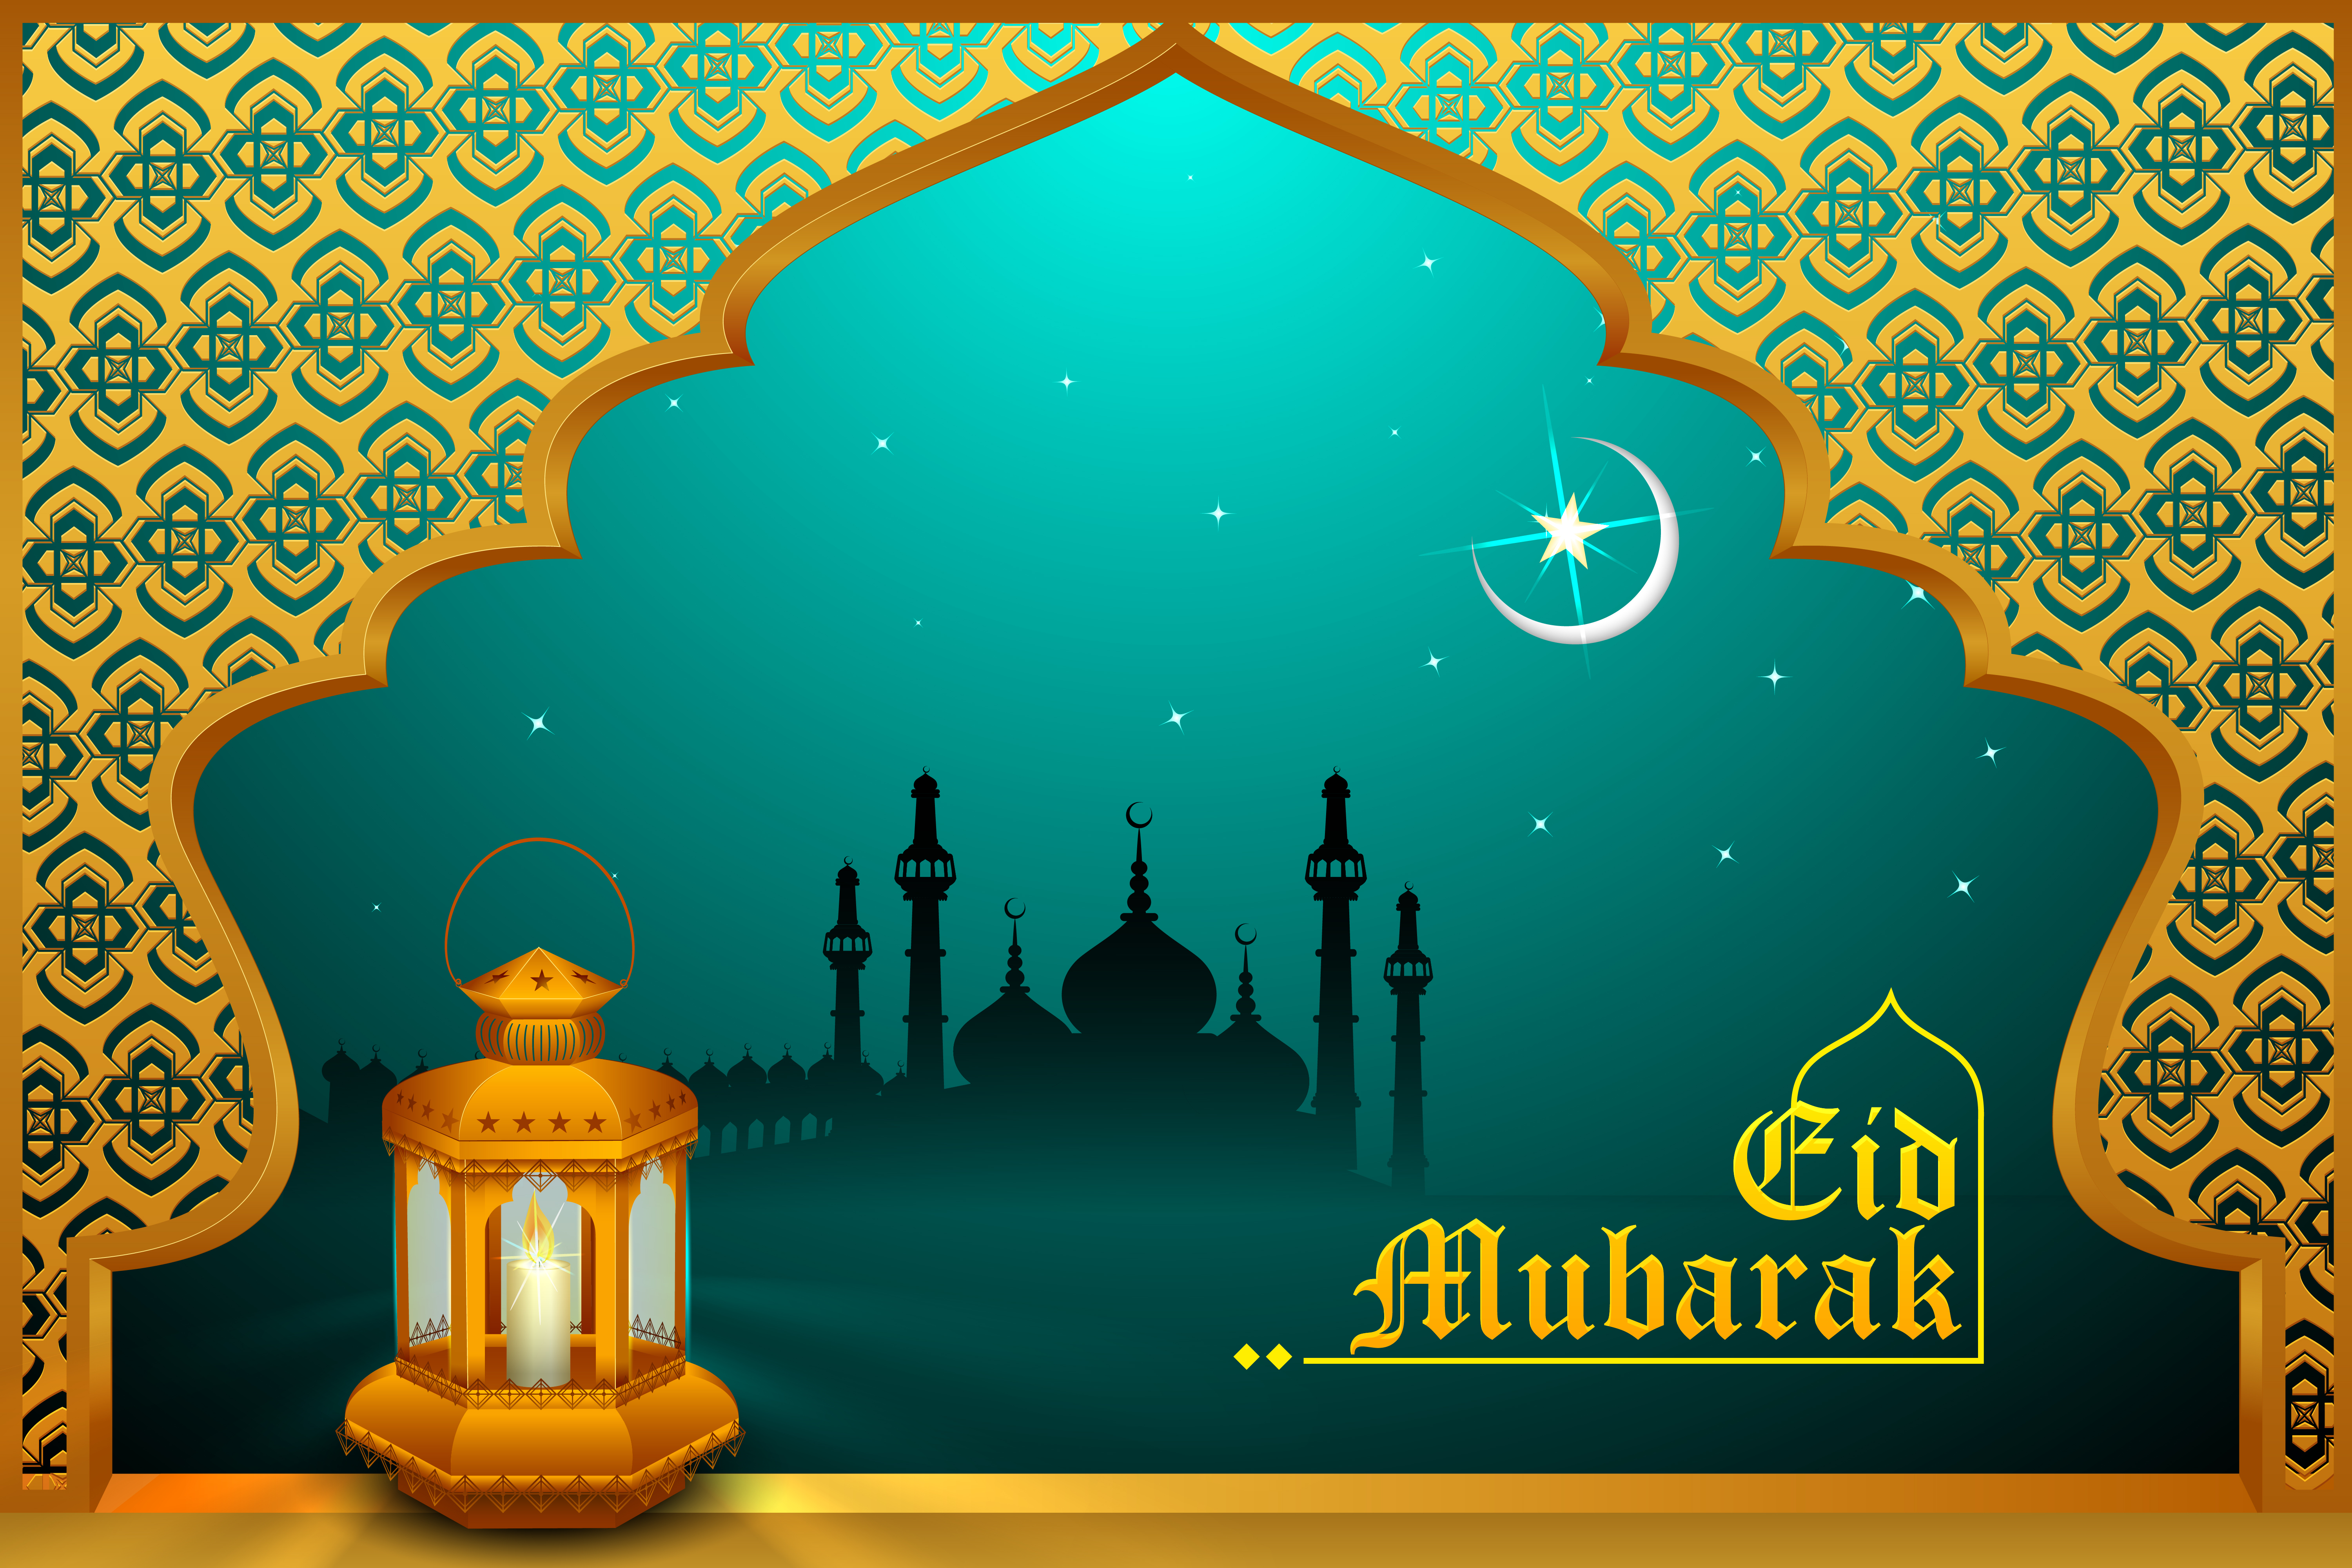 Eid Mubarak! 25 Wishes, Greetings And Messages To Celebrate Eid al ...